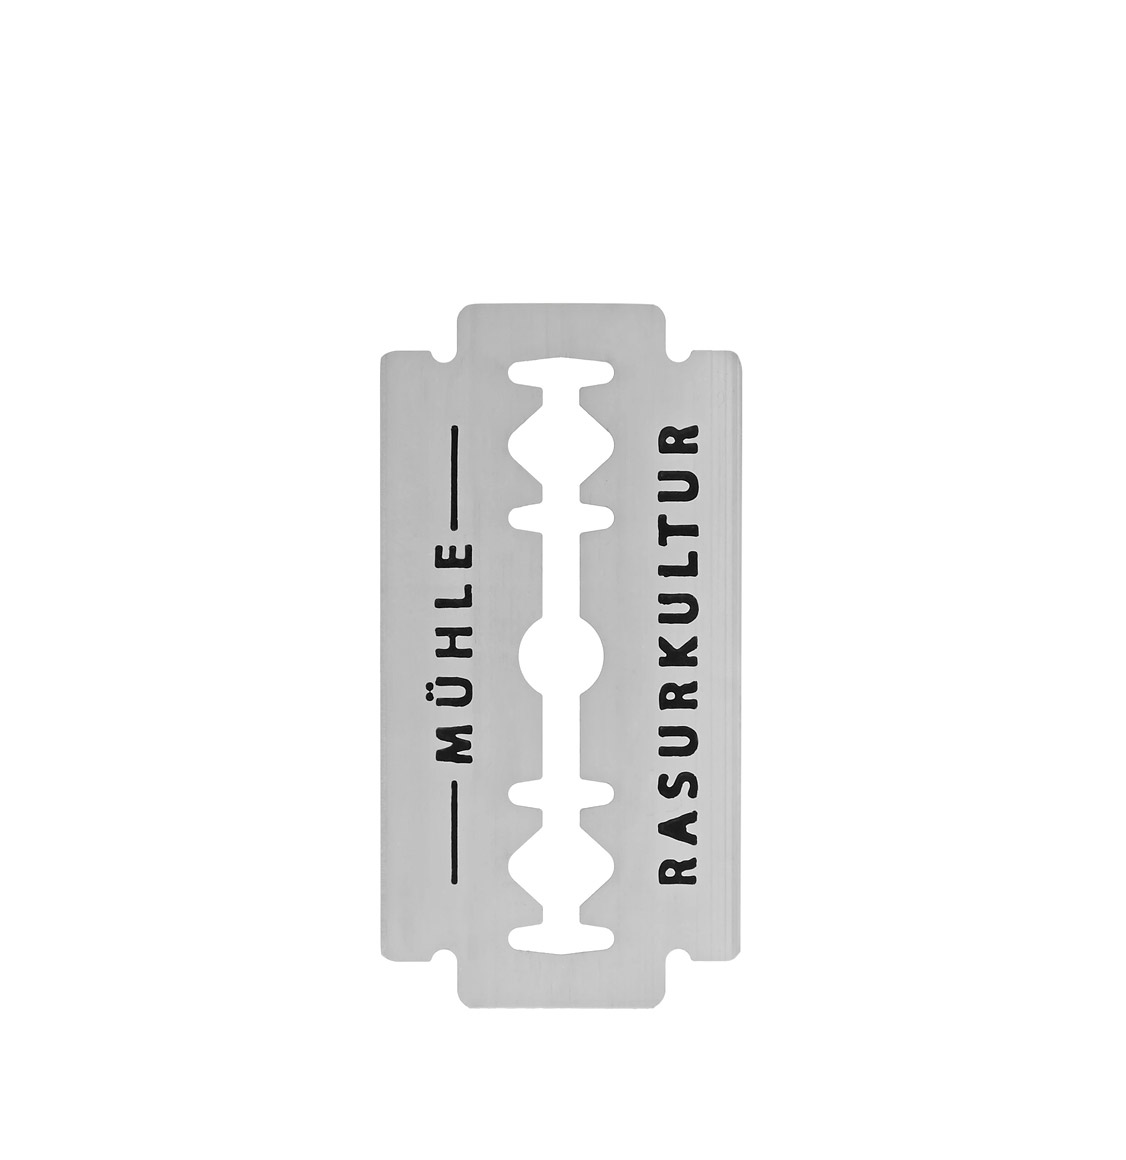 Muhle 10 Stainless Steel Safety Razor Blades